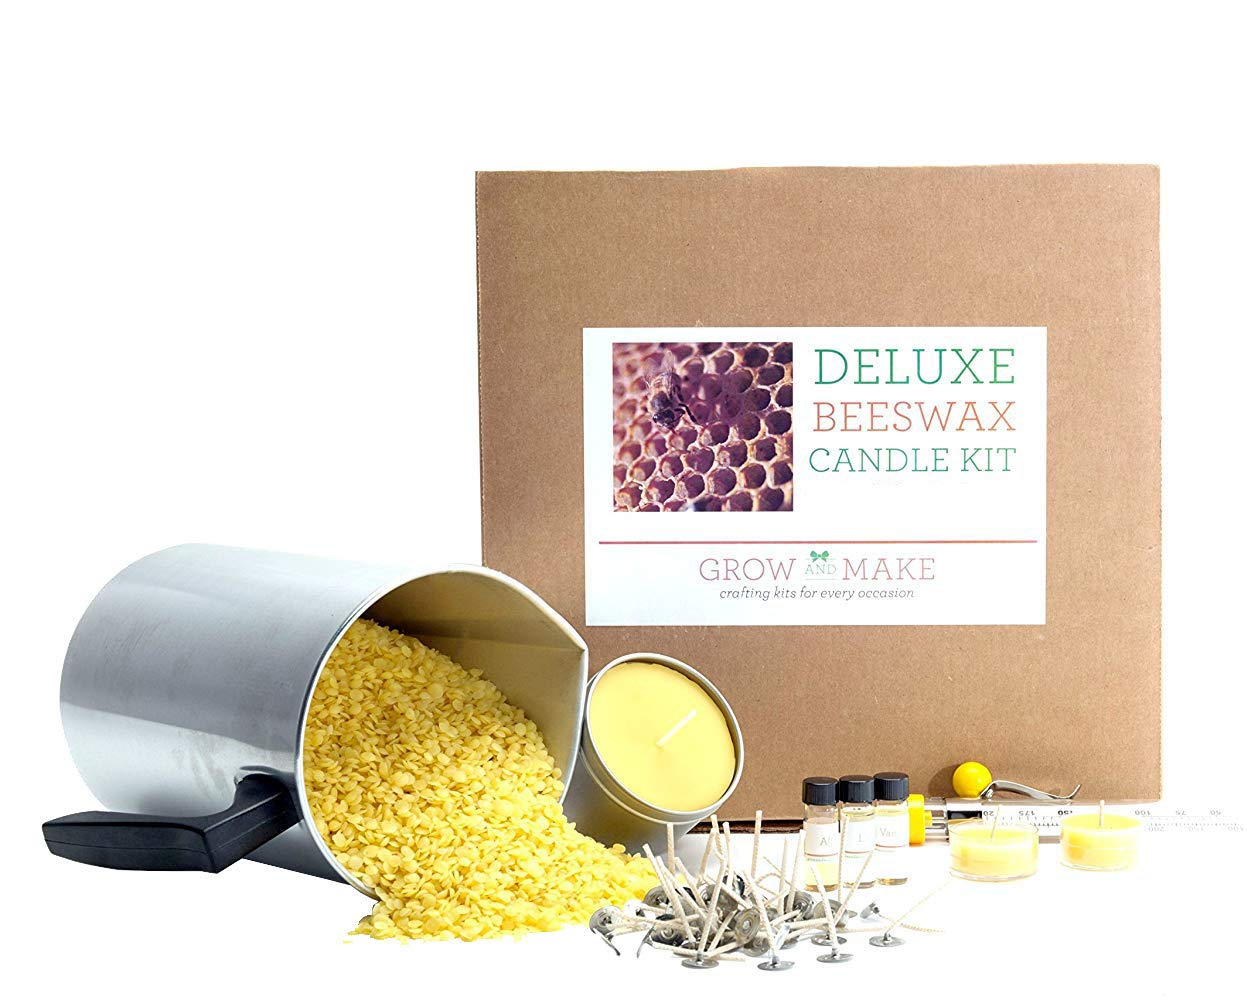 Grow and Make Deluxe Beeswax Candle Making Kit with Tin Containers - Make 6 of Your own Beeswax Candles at Home!